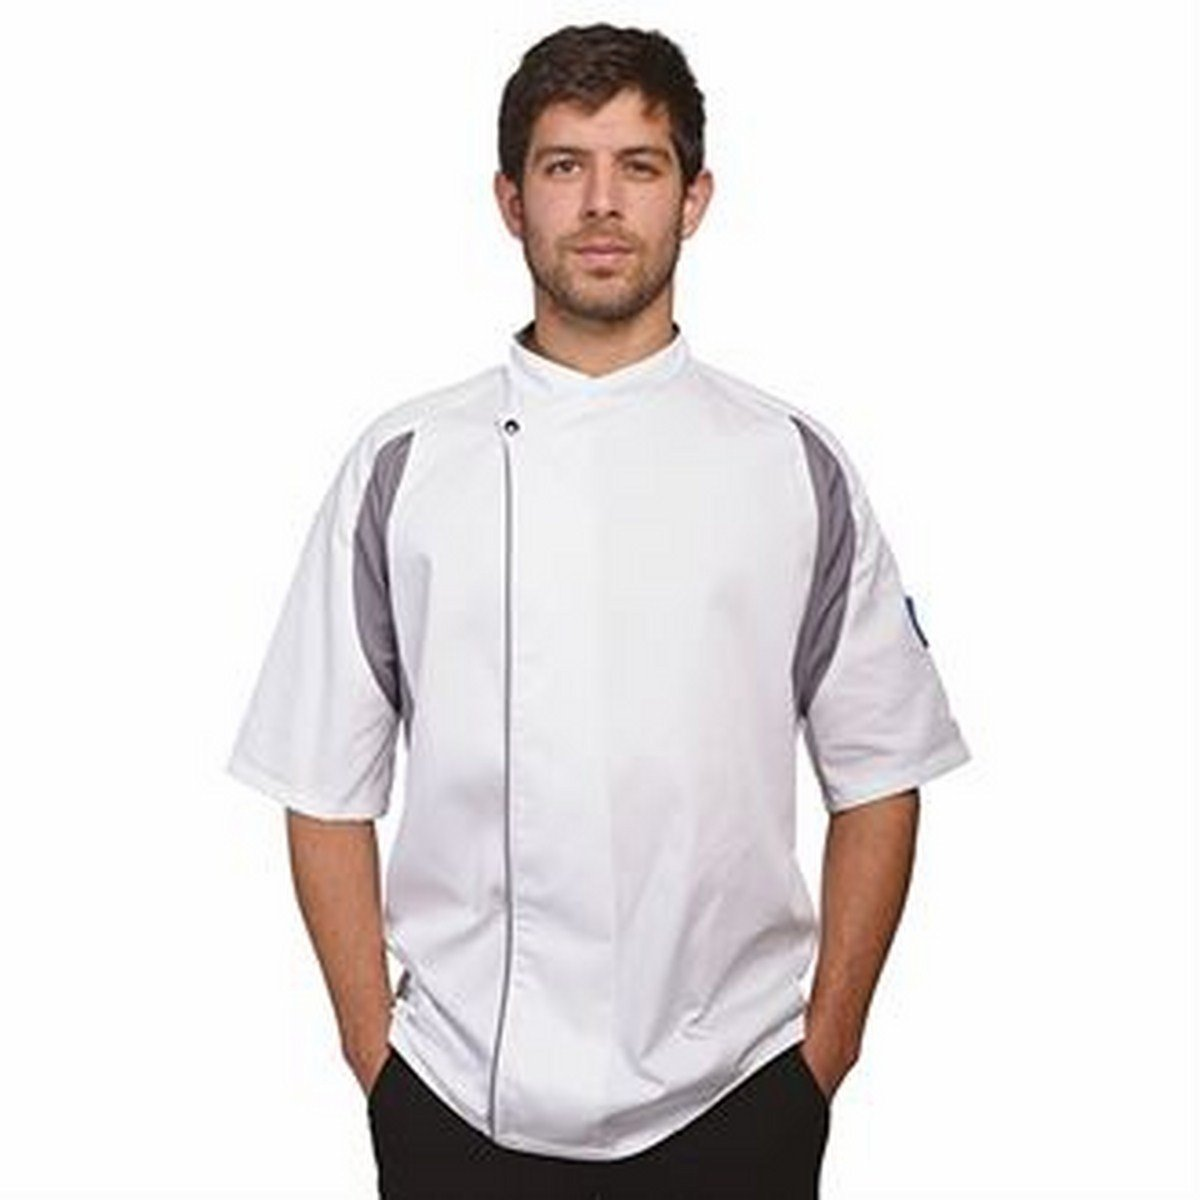 Staycool executive short sleeved tunic (DE12AH, GH,CGH)(White/ Black, L) by Le Chef